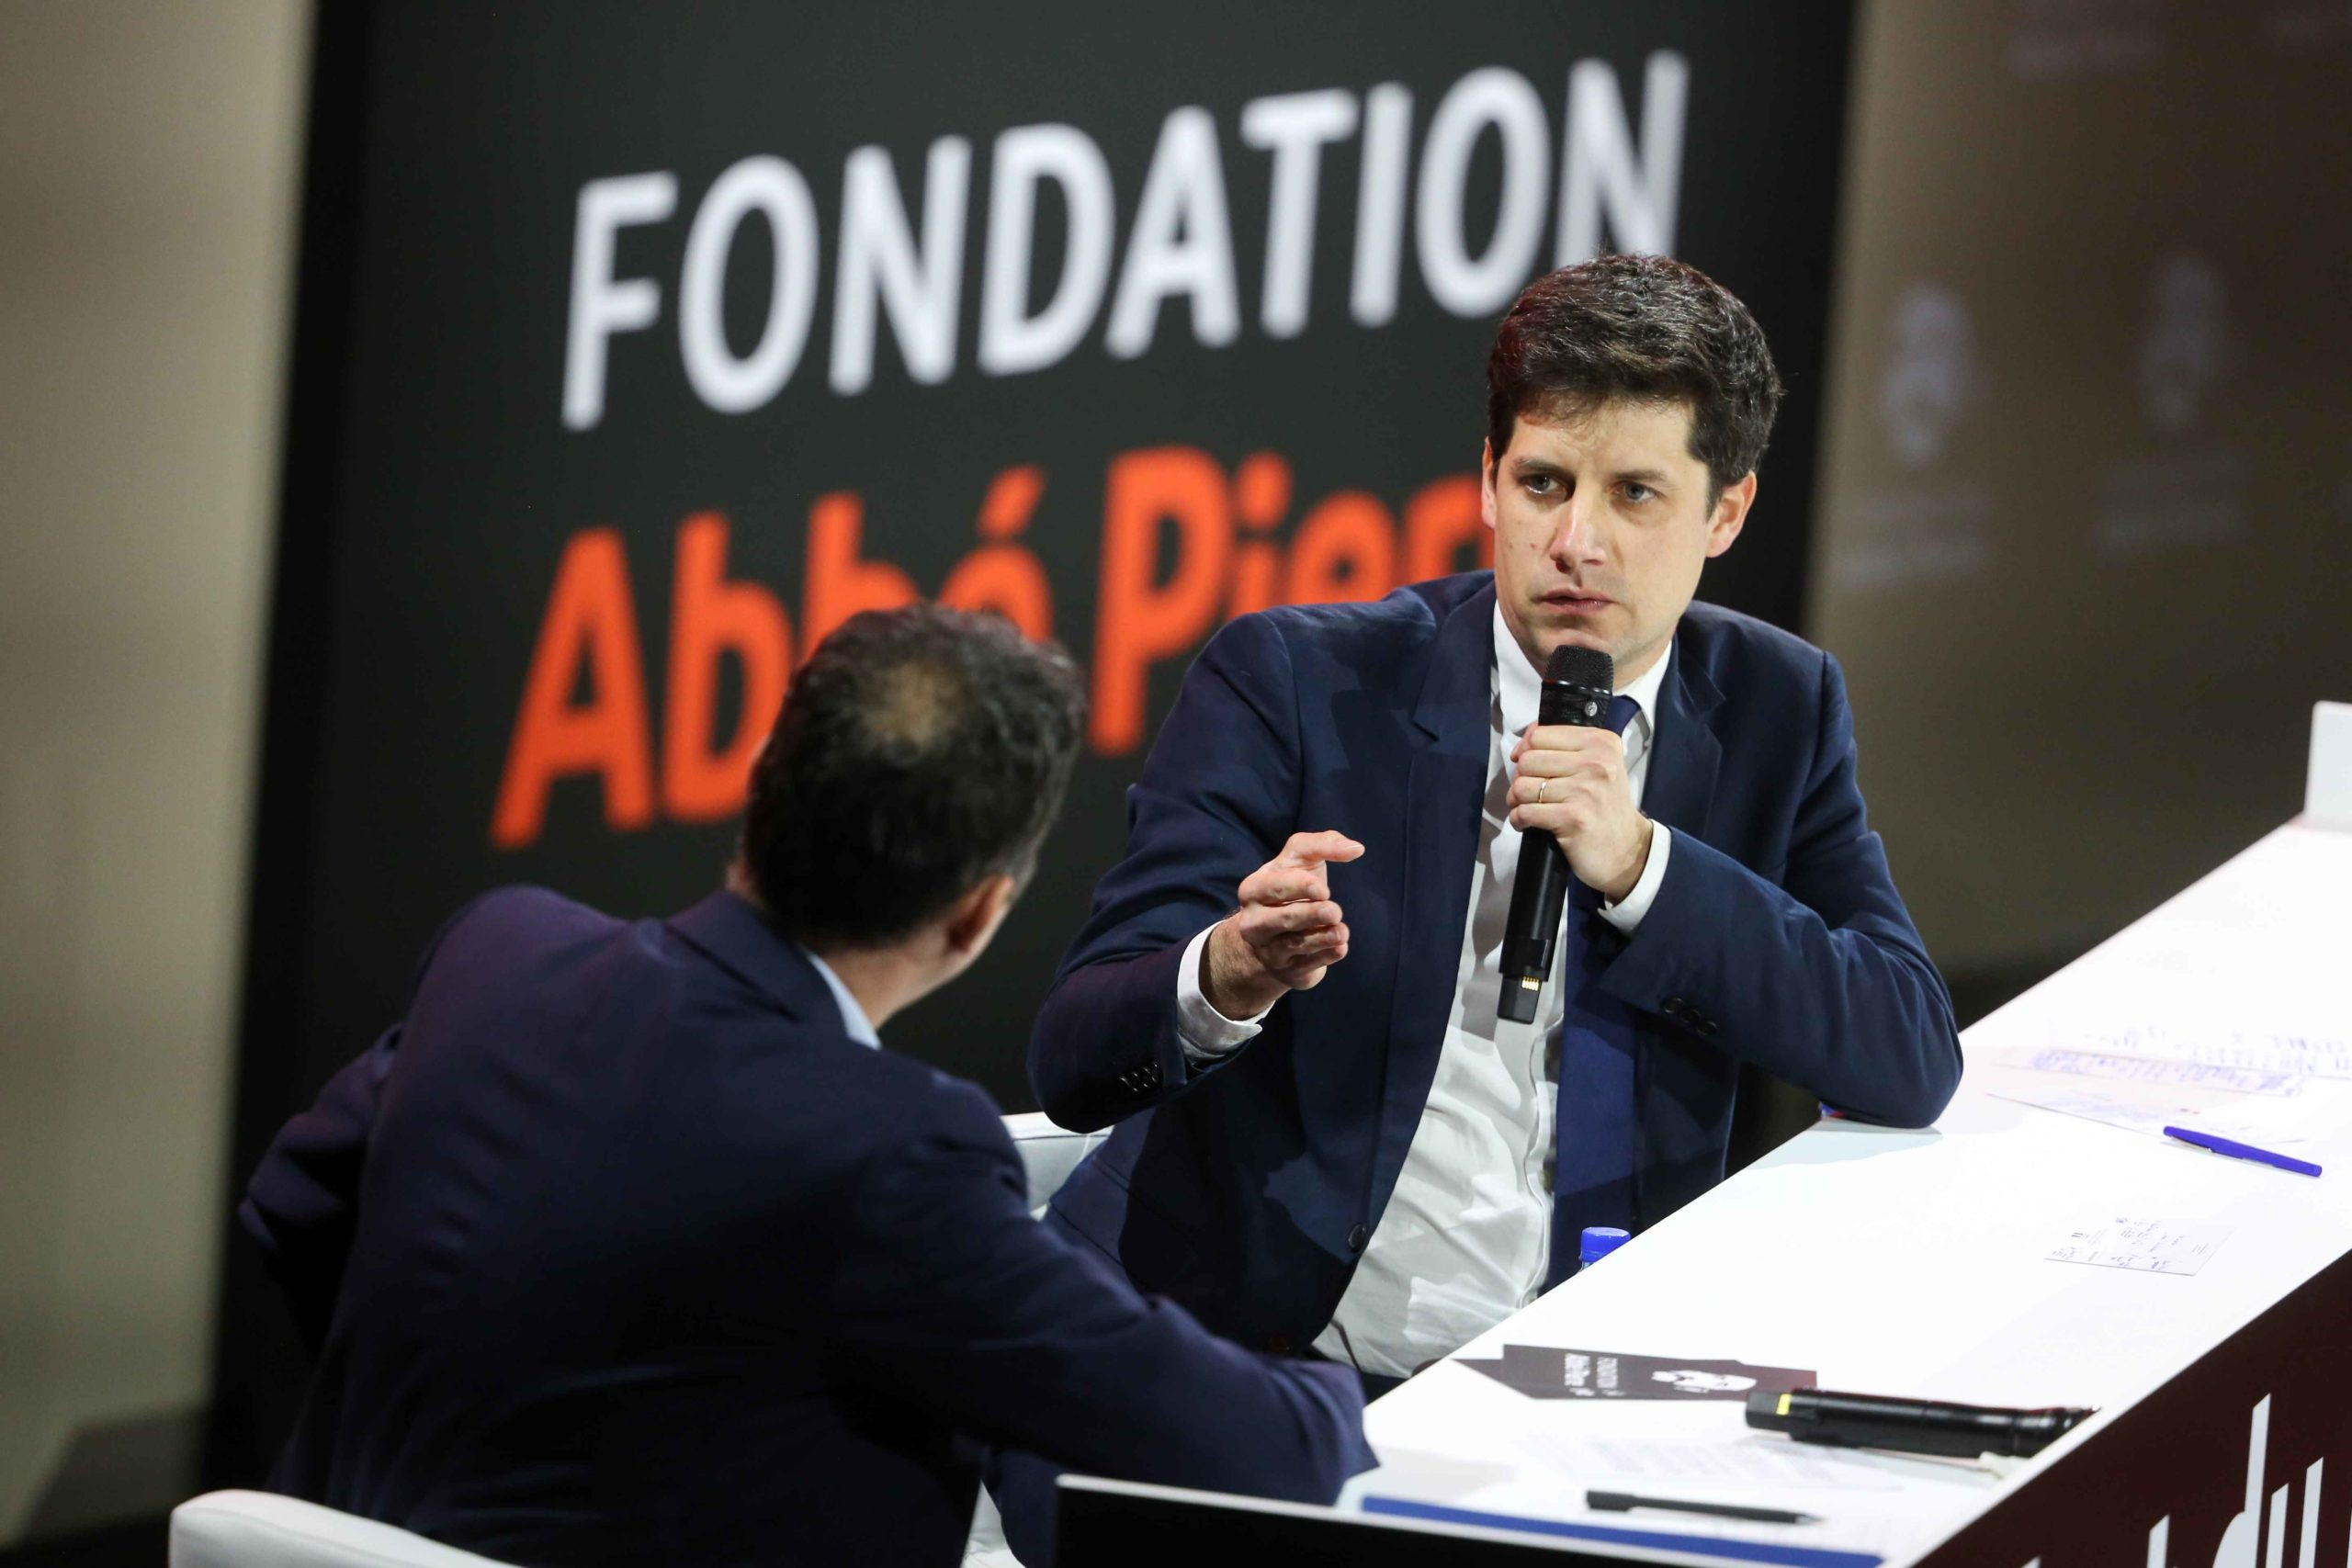 French Junior Minister for Cities and Housing Julien Denormandie (R) takes part in a debate during a report of the Abbe Pierre Foundation on poor quality housing conditions, on January 31, 2020 in La Defense, near Paris.